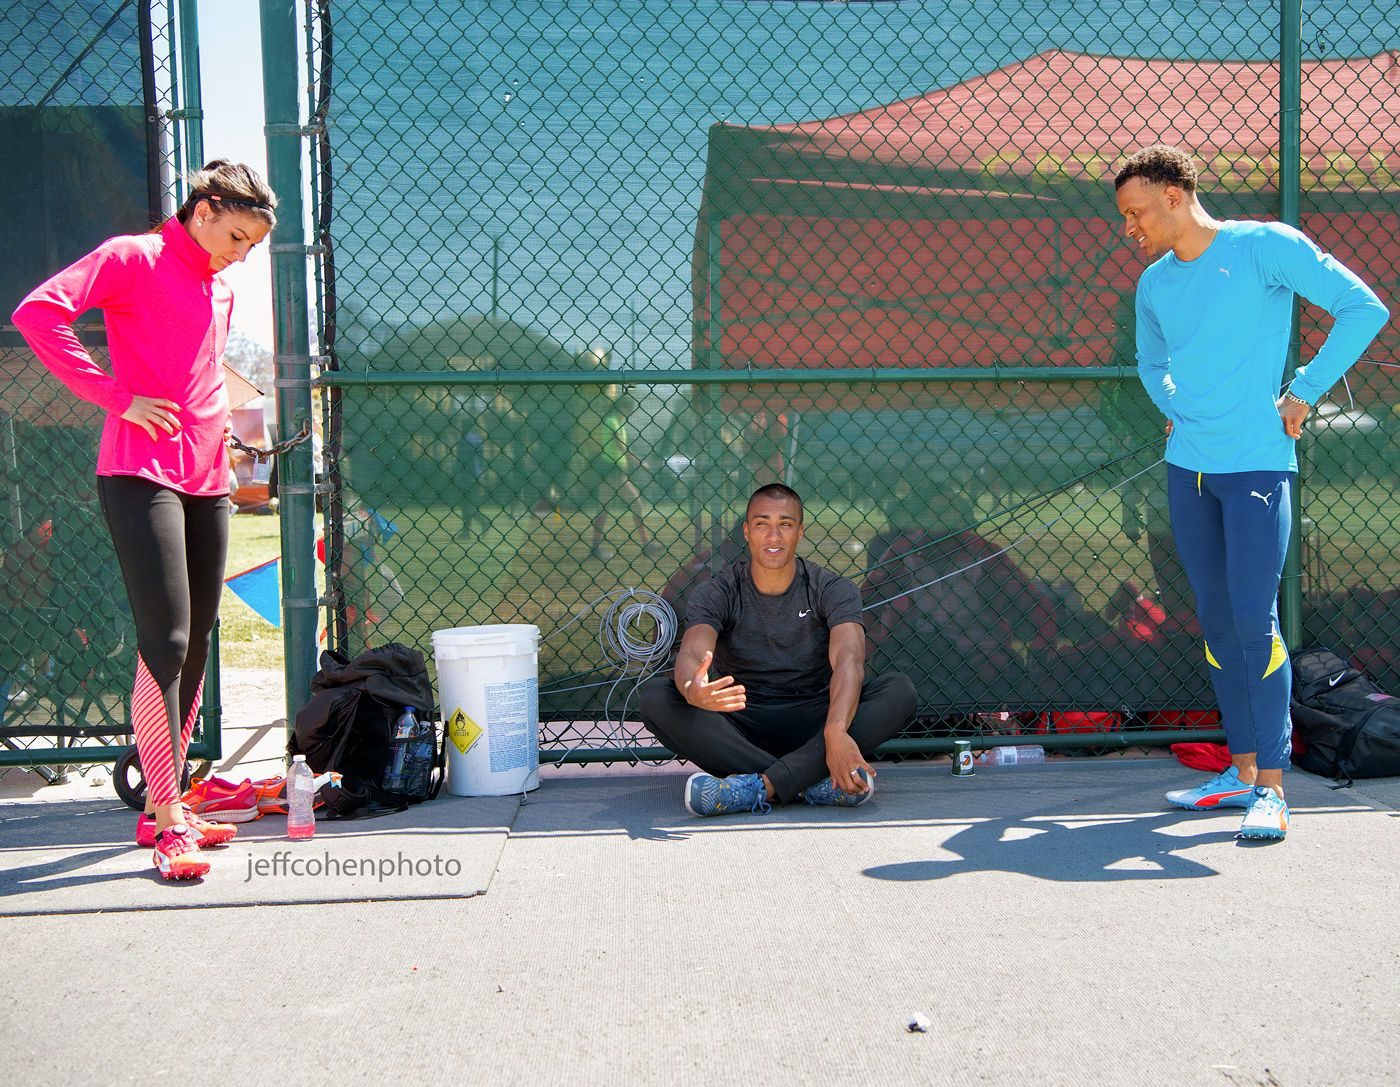 1mtsacrelays_4_16_16_prandini_eaton_degrasse__jeff_cohen_photo_3251_web.jpg